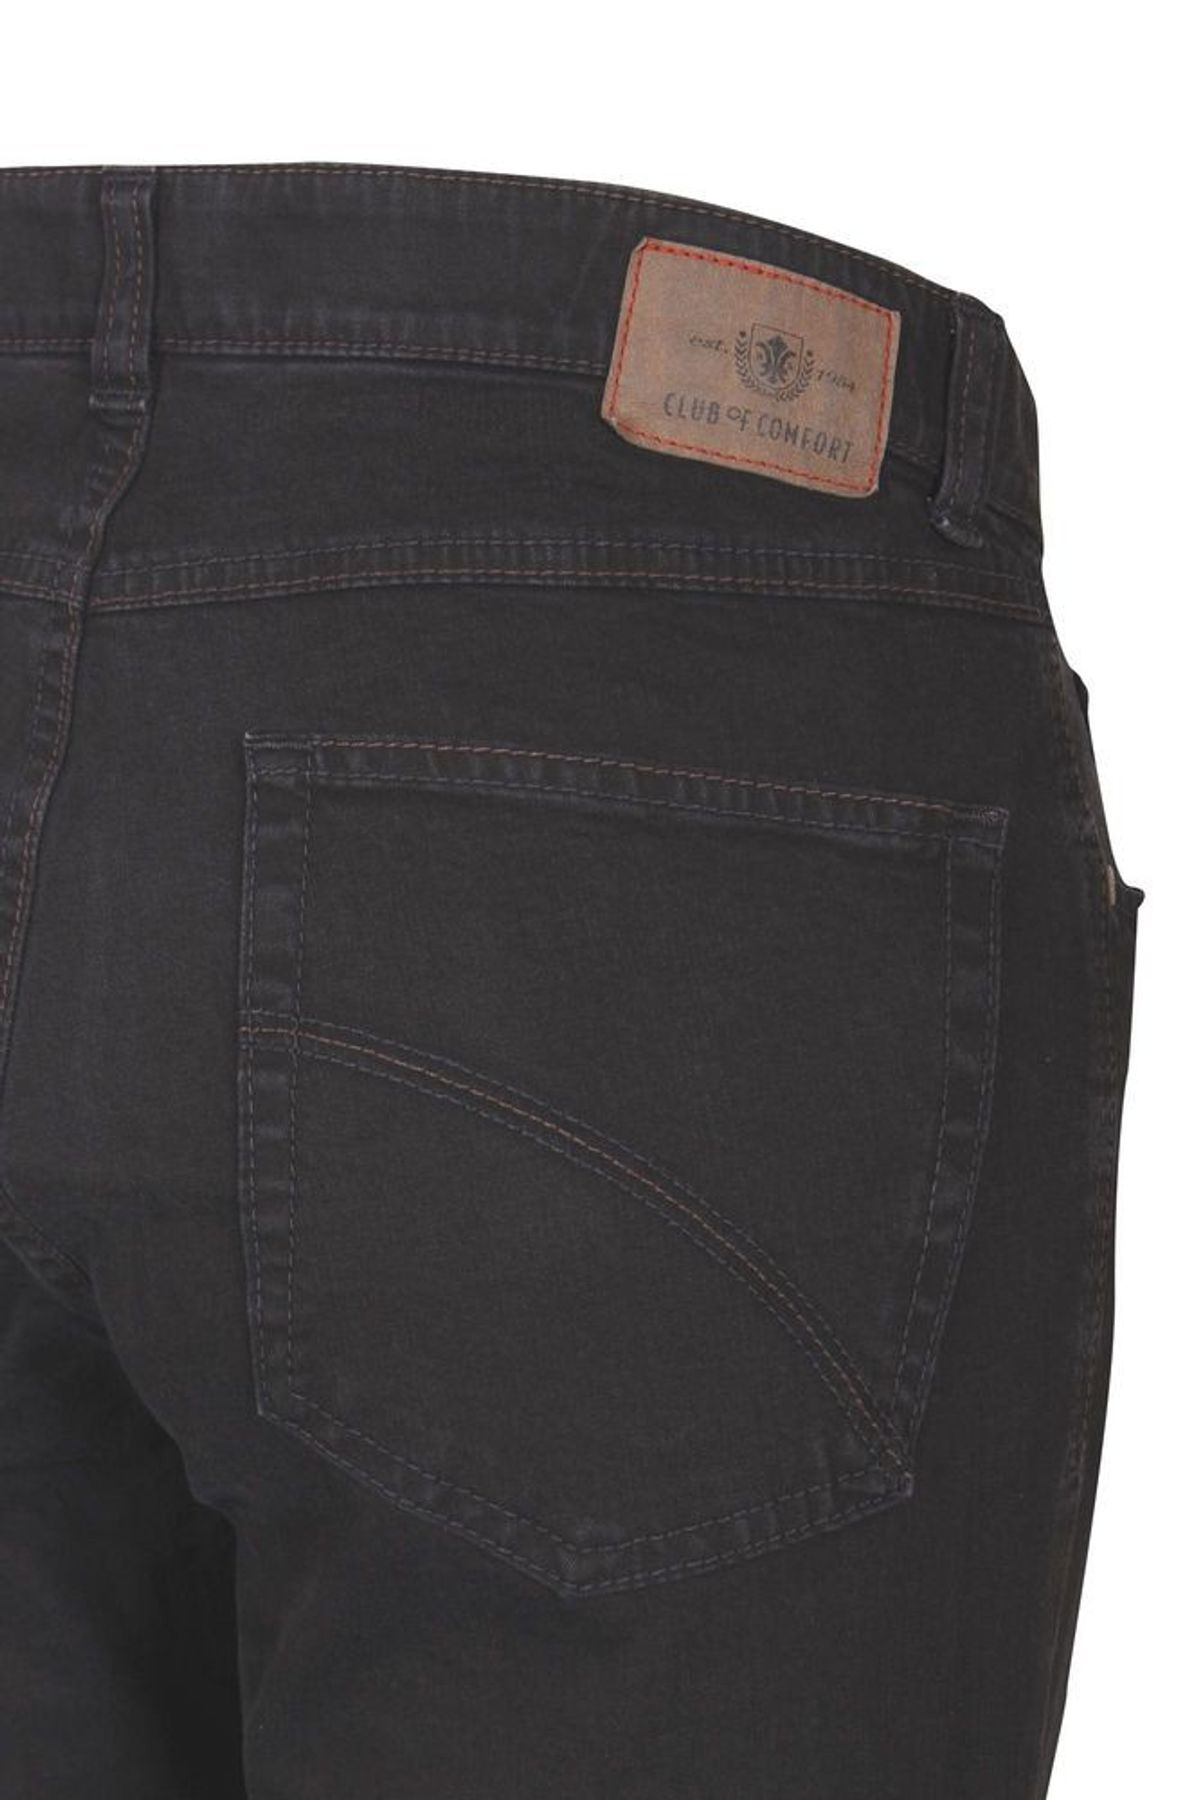 Club of Comfort - Herren Five Pocket Jeans in verschiedenen Farben, James (4631) – Bild 8